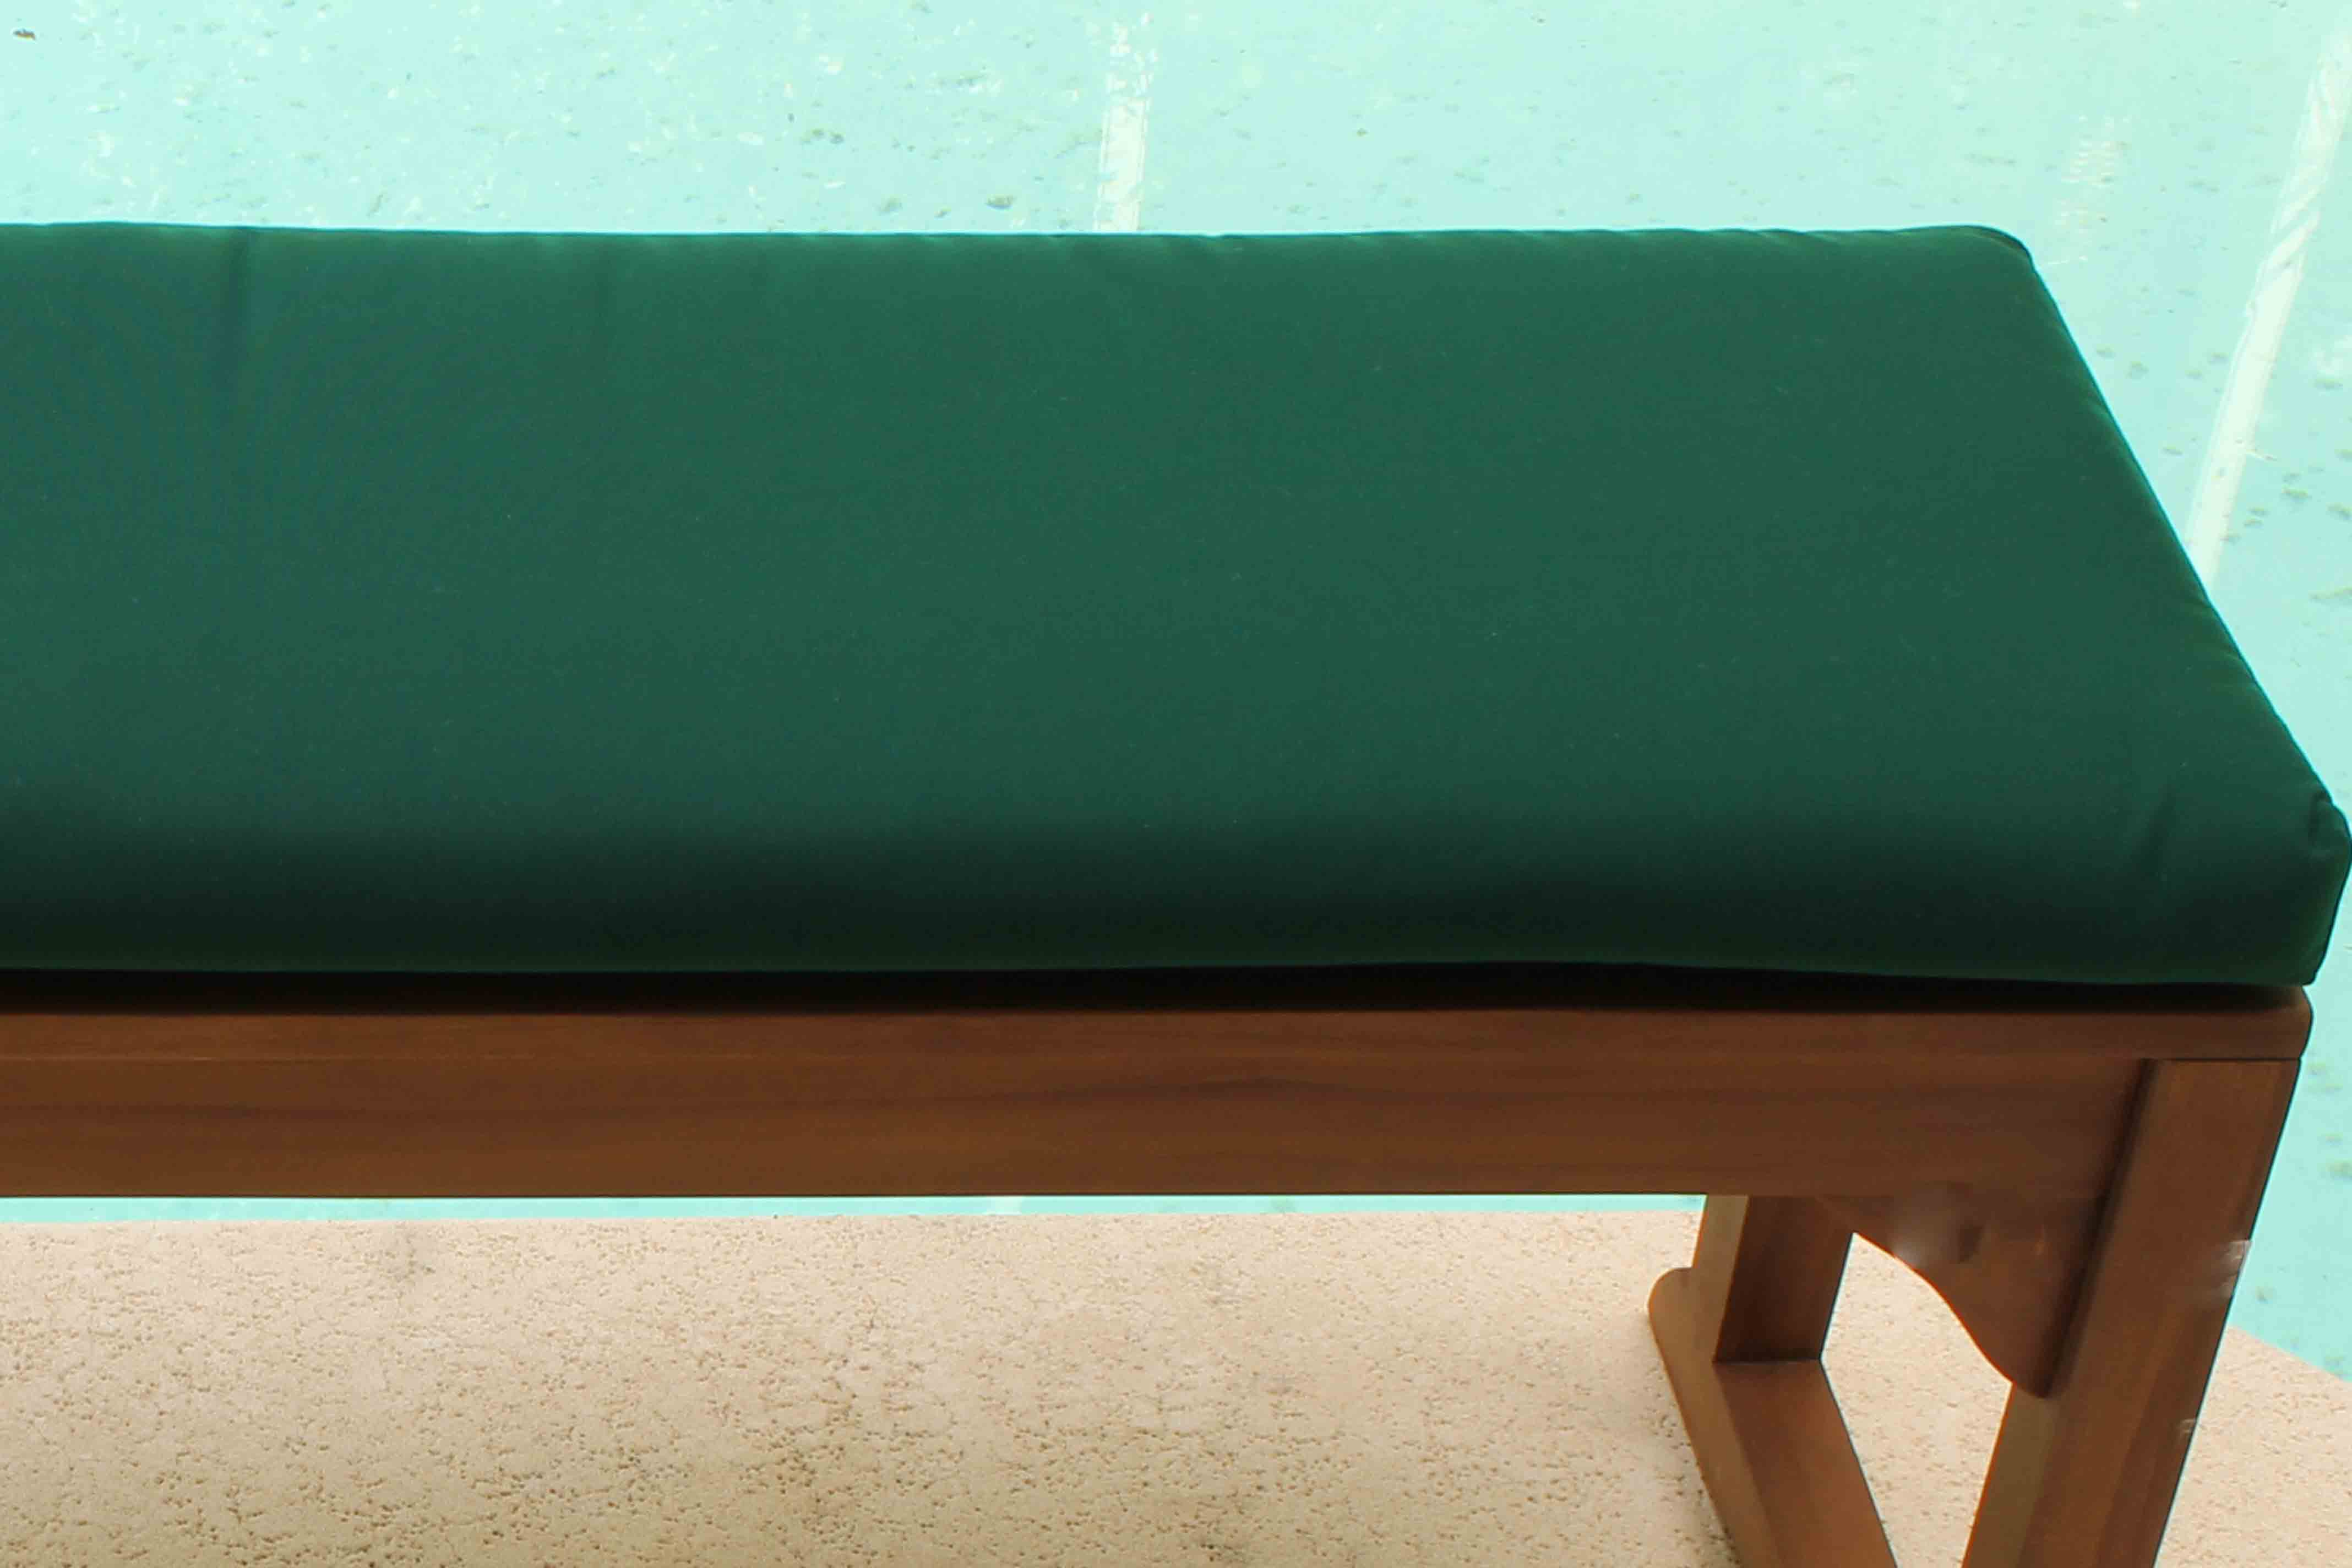 Clearance SALE Java 72in Backless Teak Bench Plus FREE Forest Green Sunbrella Cushion